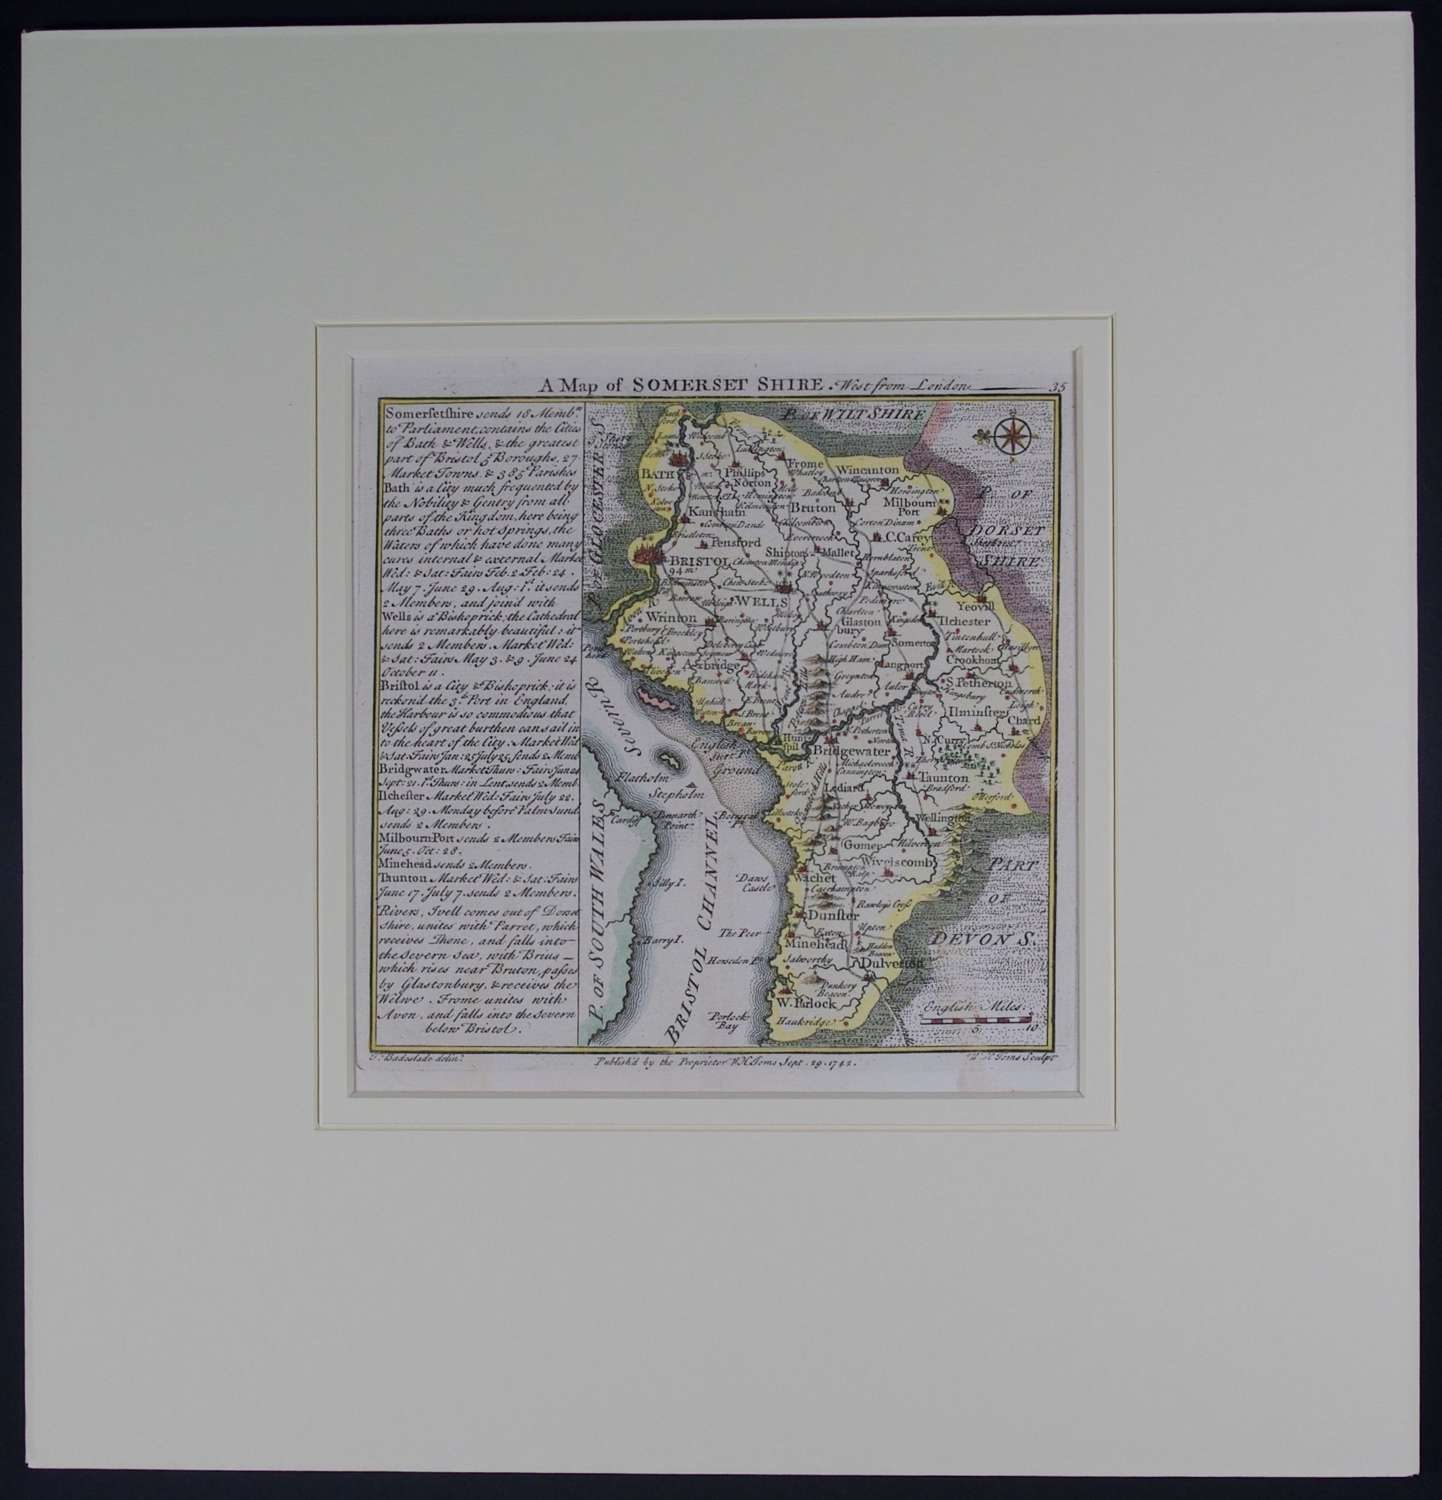 A Map of  Somerset Shire by Thomas Badeslade